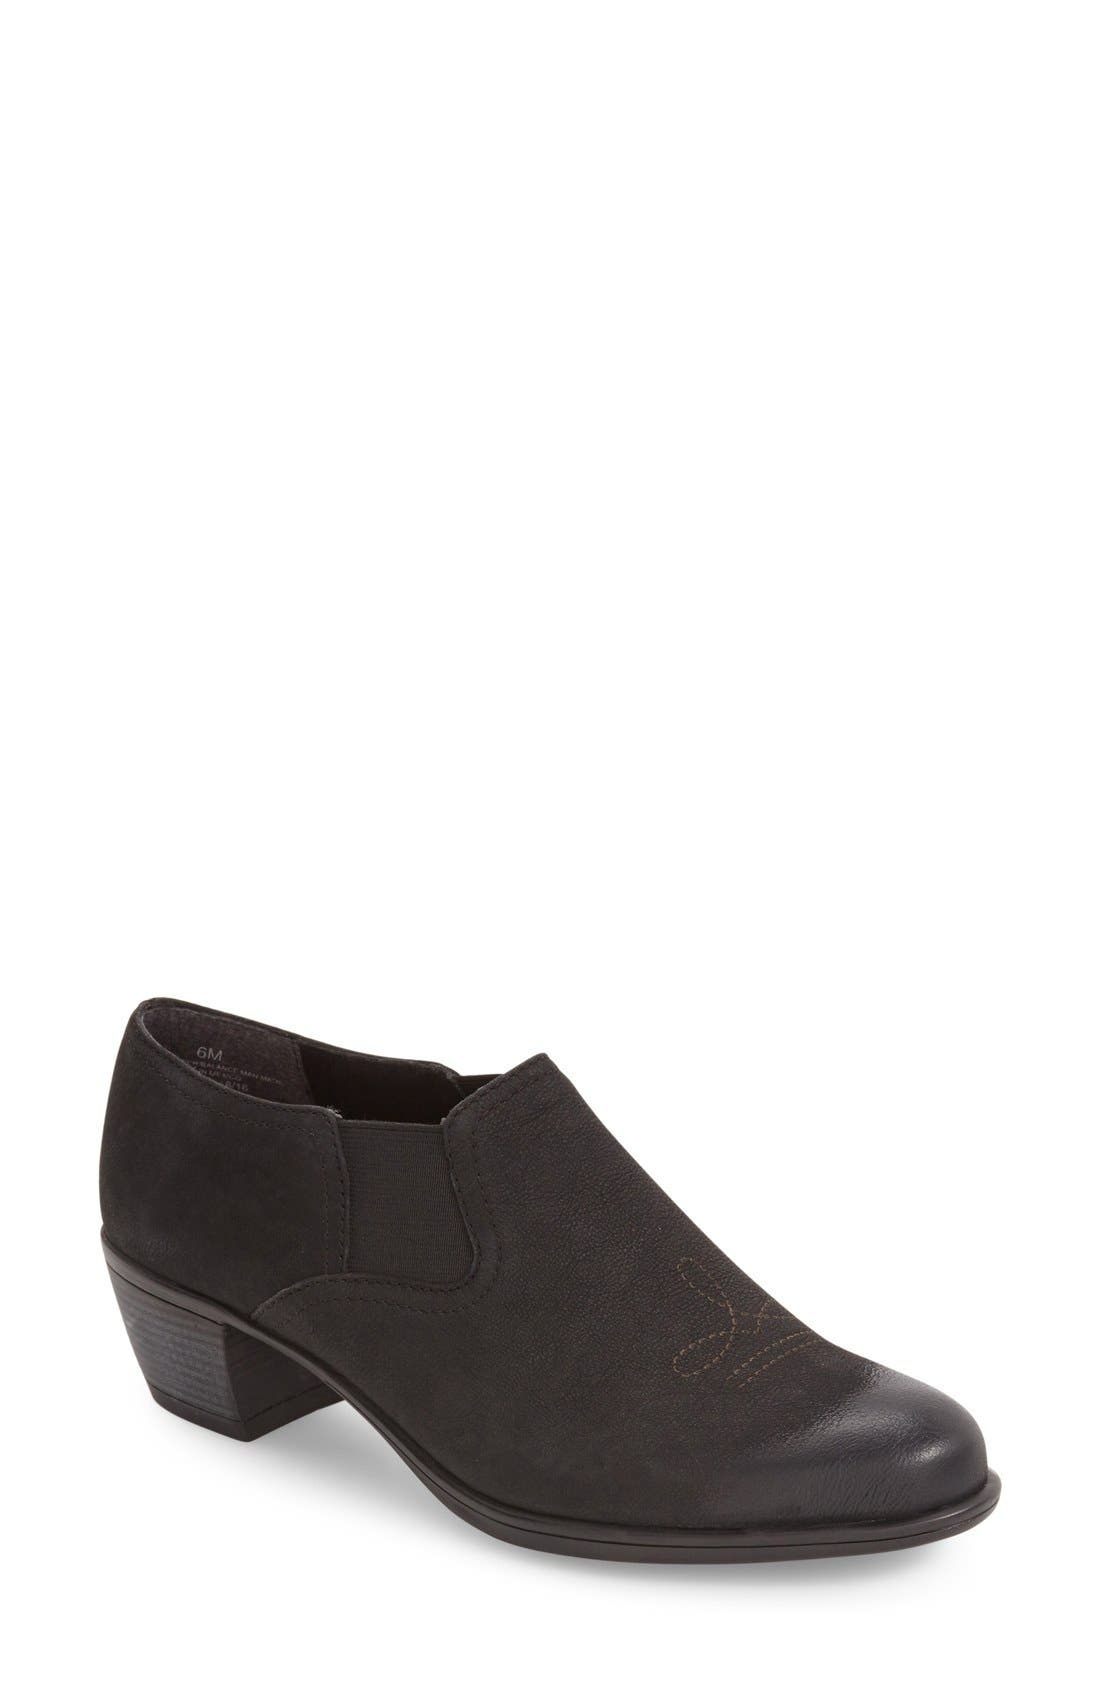 MUNRO Silverton Water Resistant Ankle Bootie